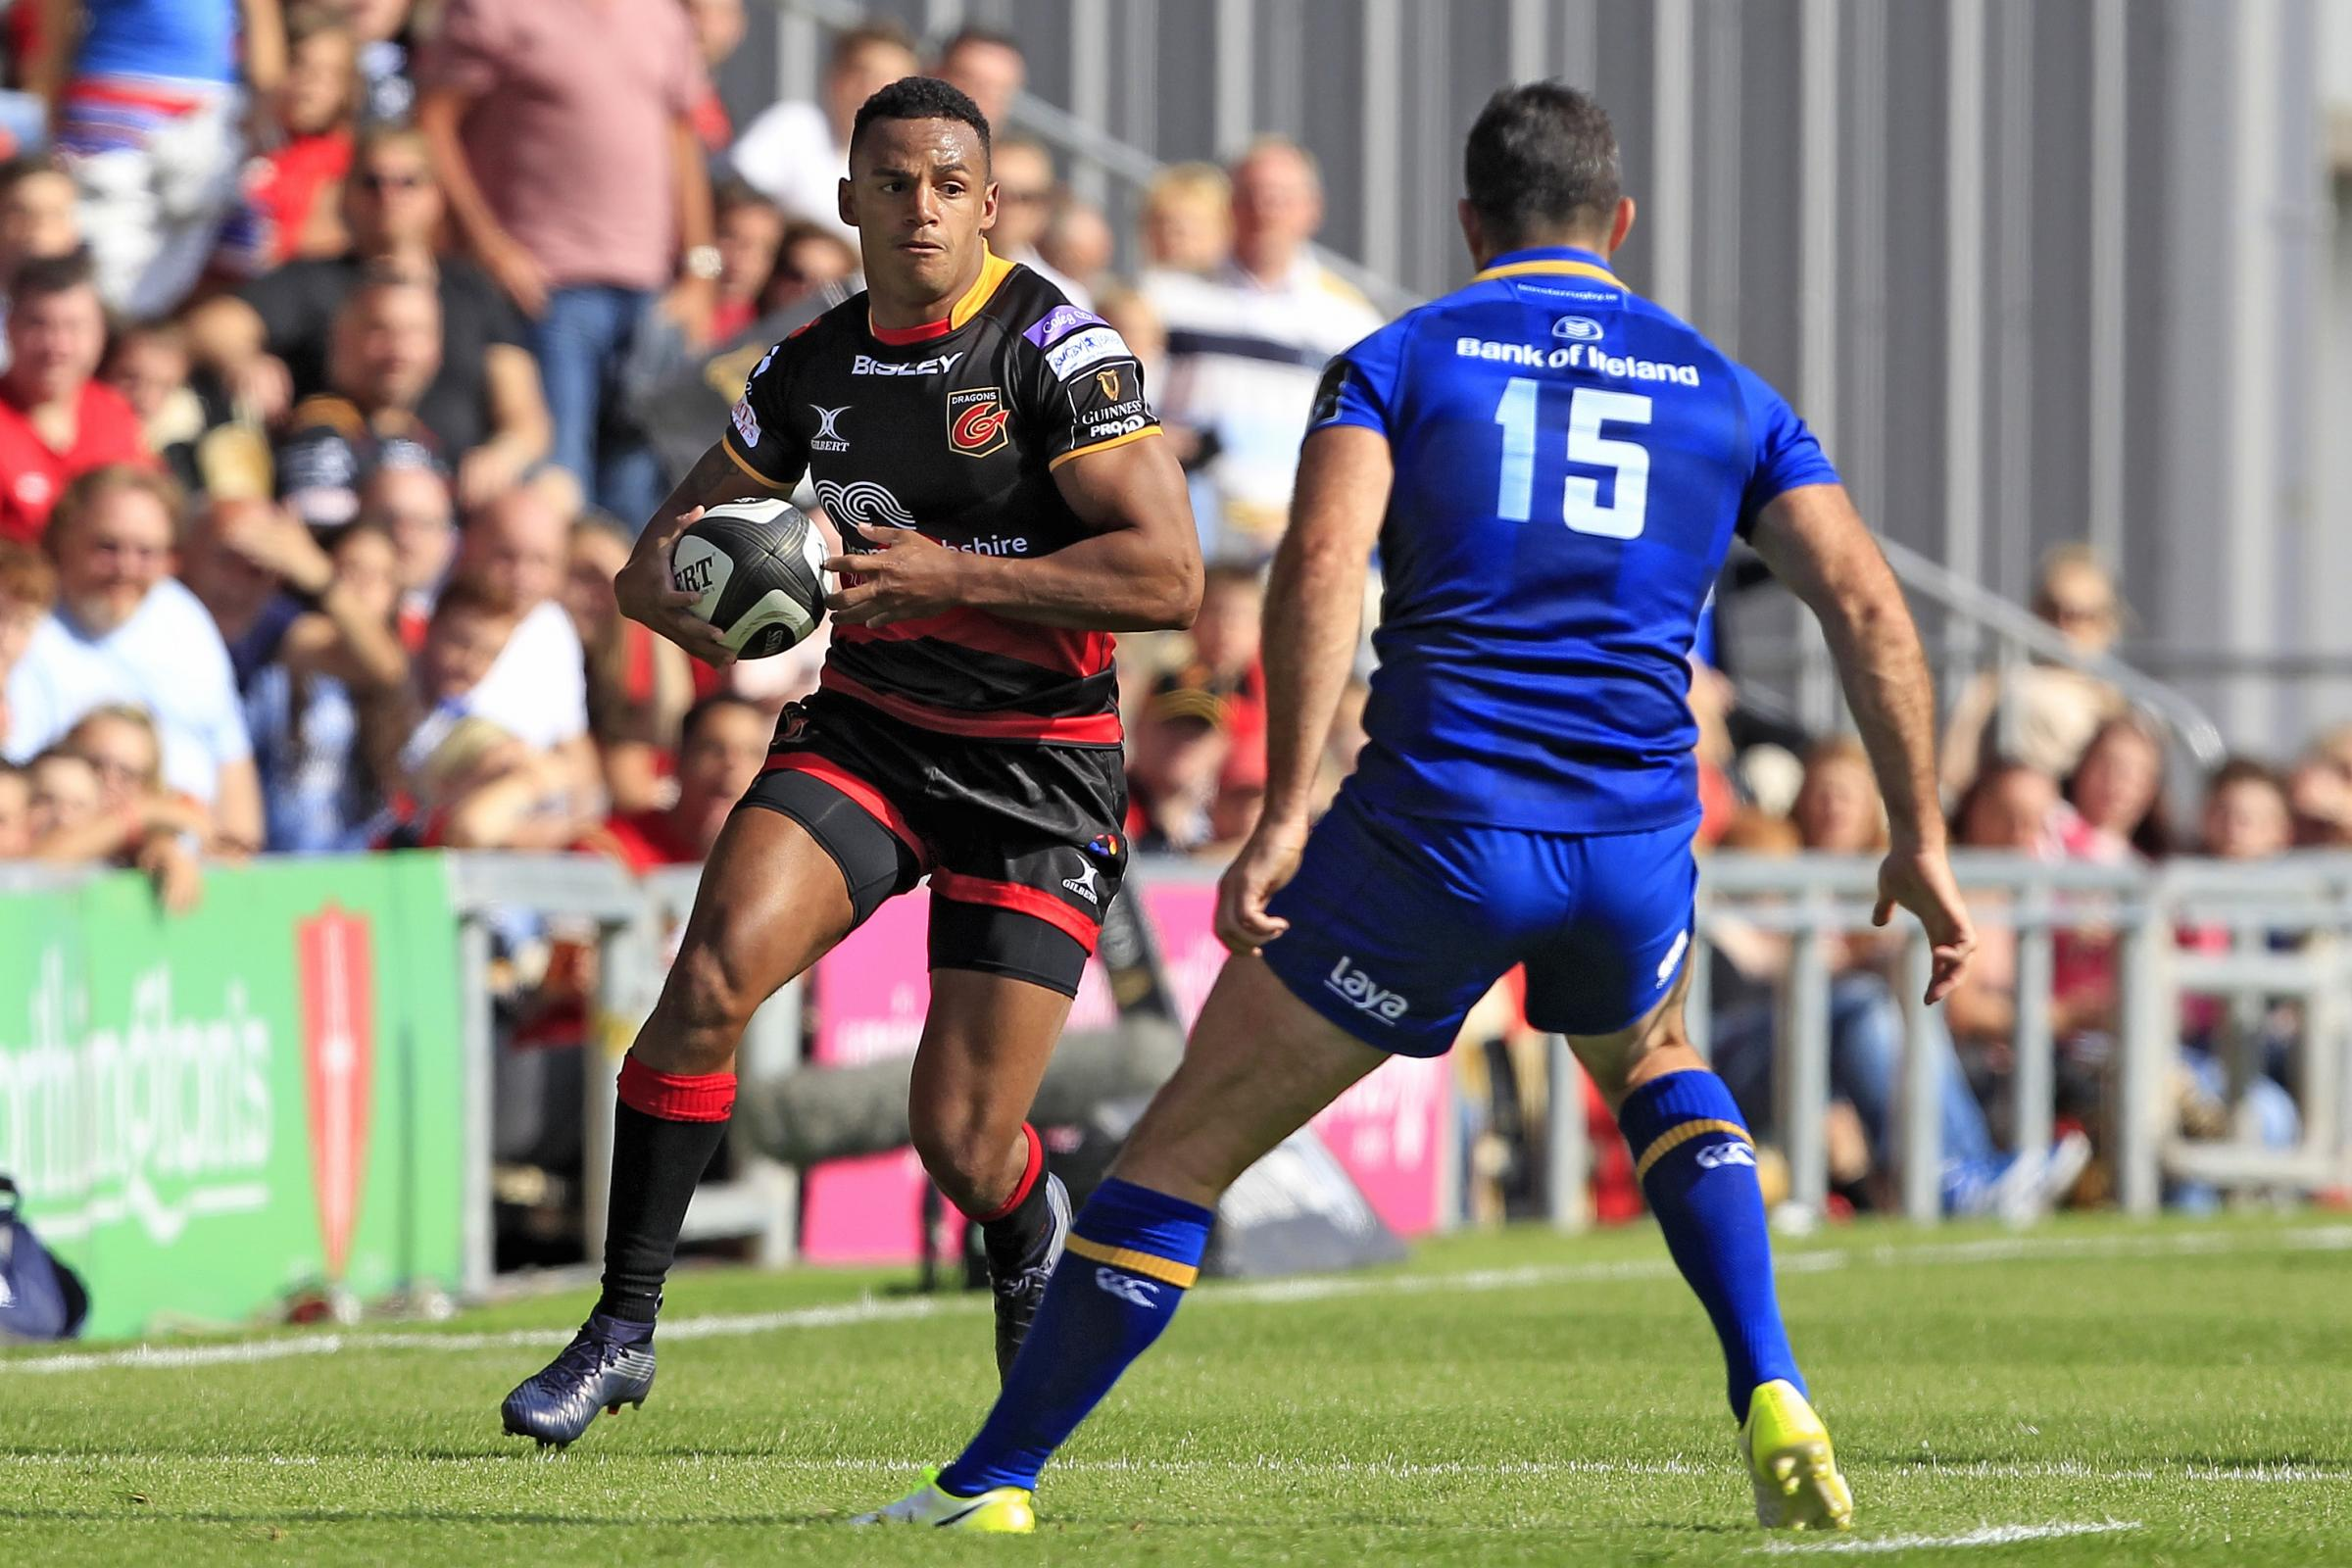 NEW DEAL: Wing Ashton Hewitt has signed a contract to stay with the Dragons